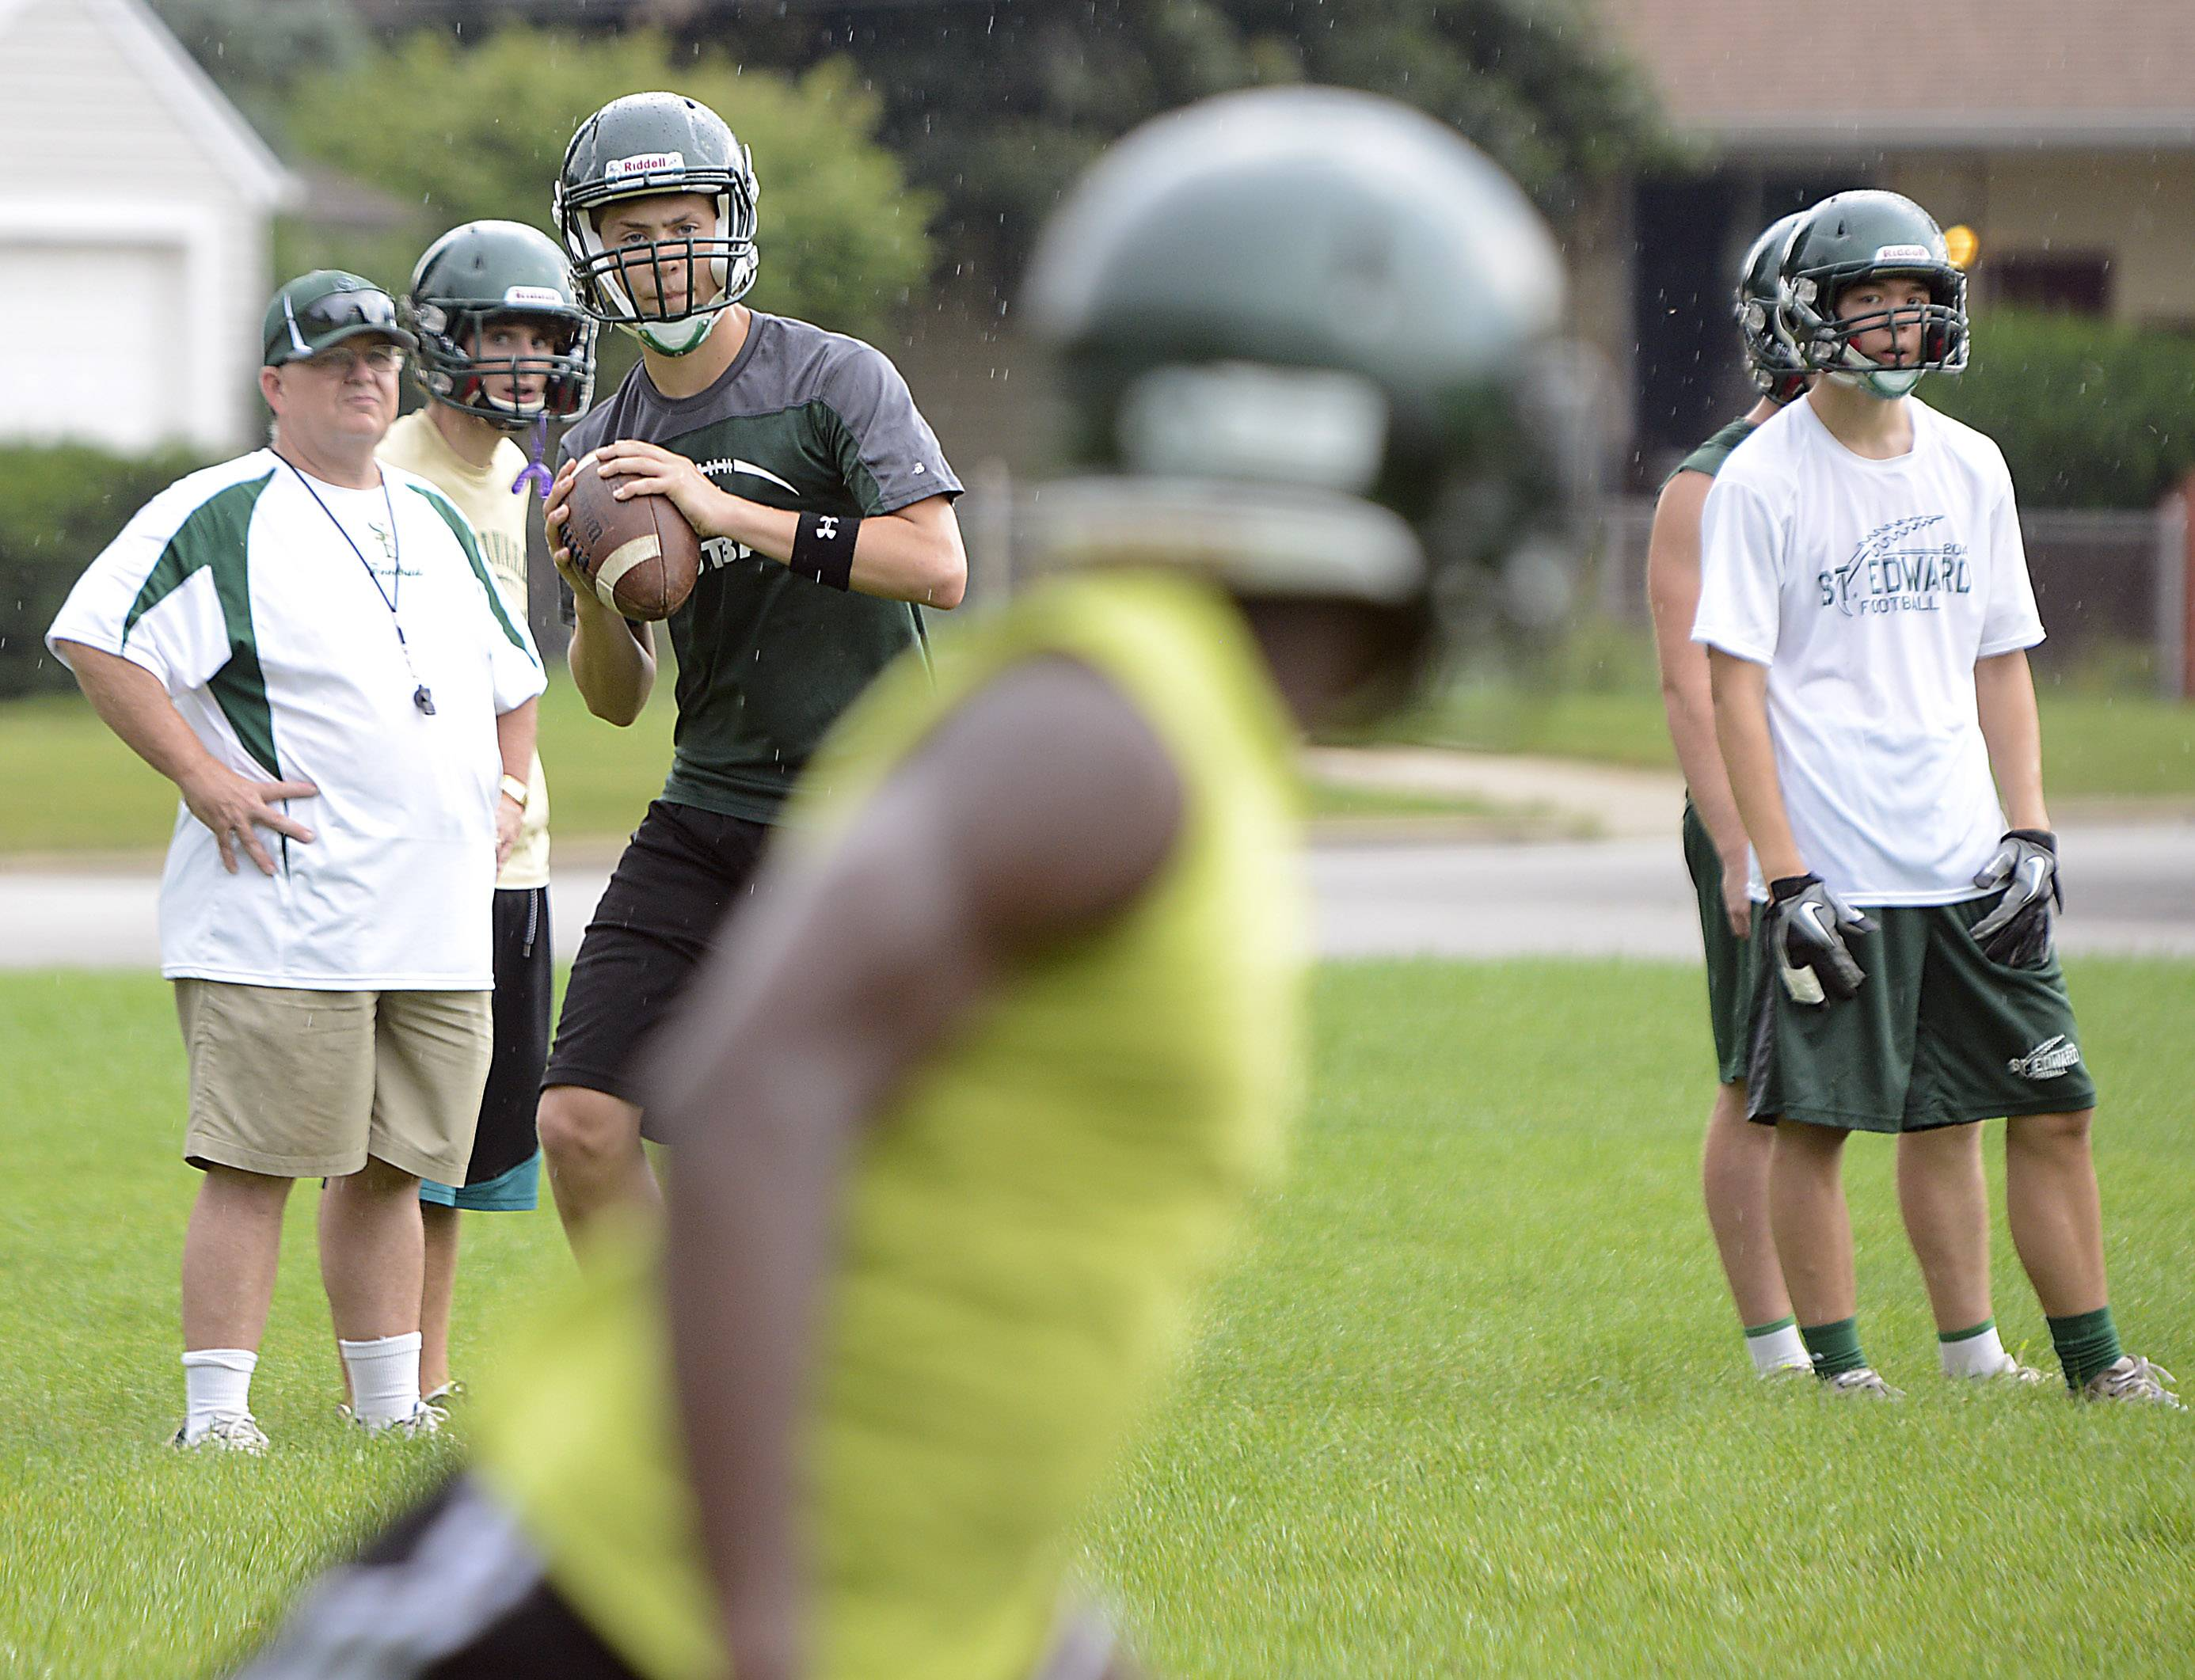 Quarterback Joe Mullen looks for Dwayne Allen during St. Edward High School football practice Monday.